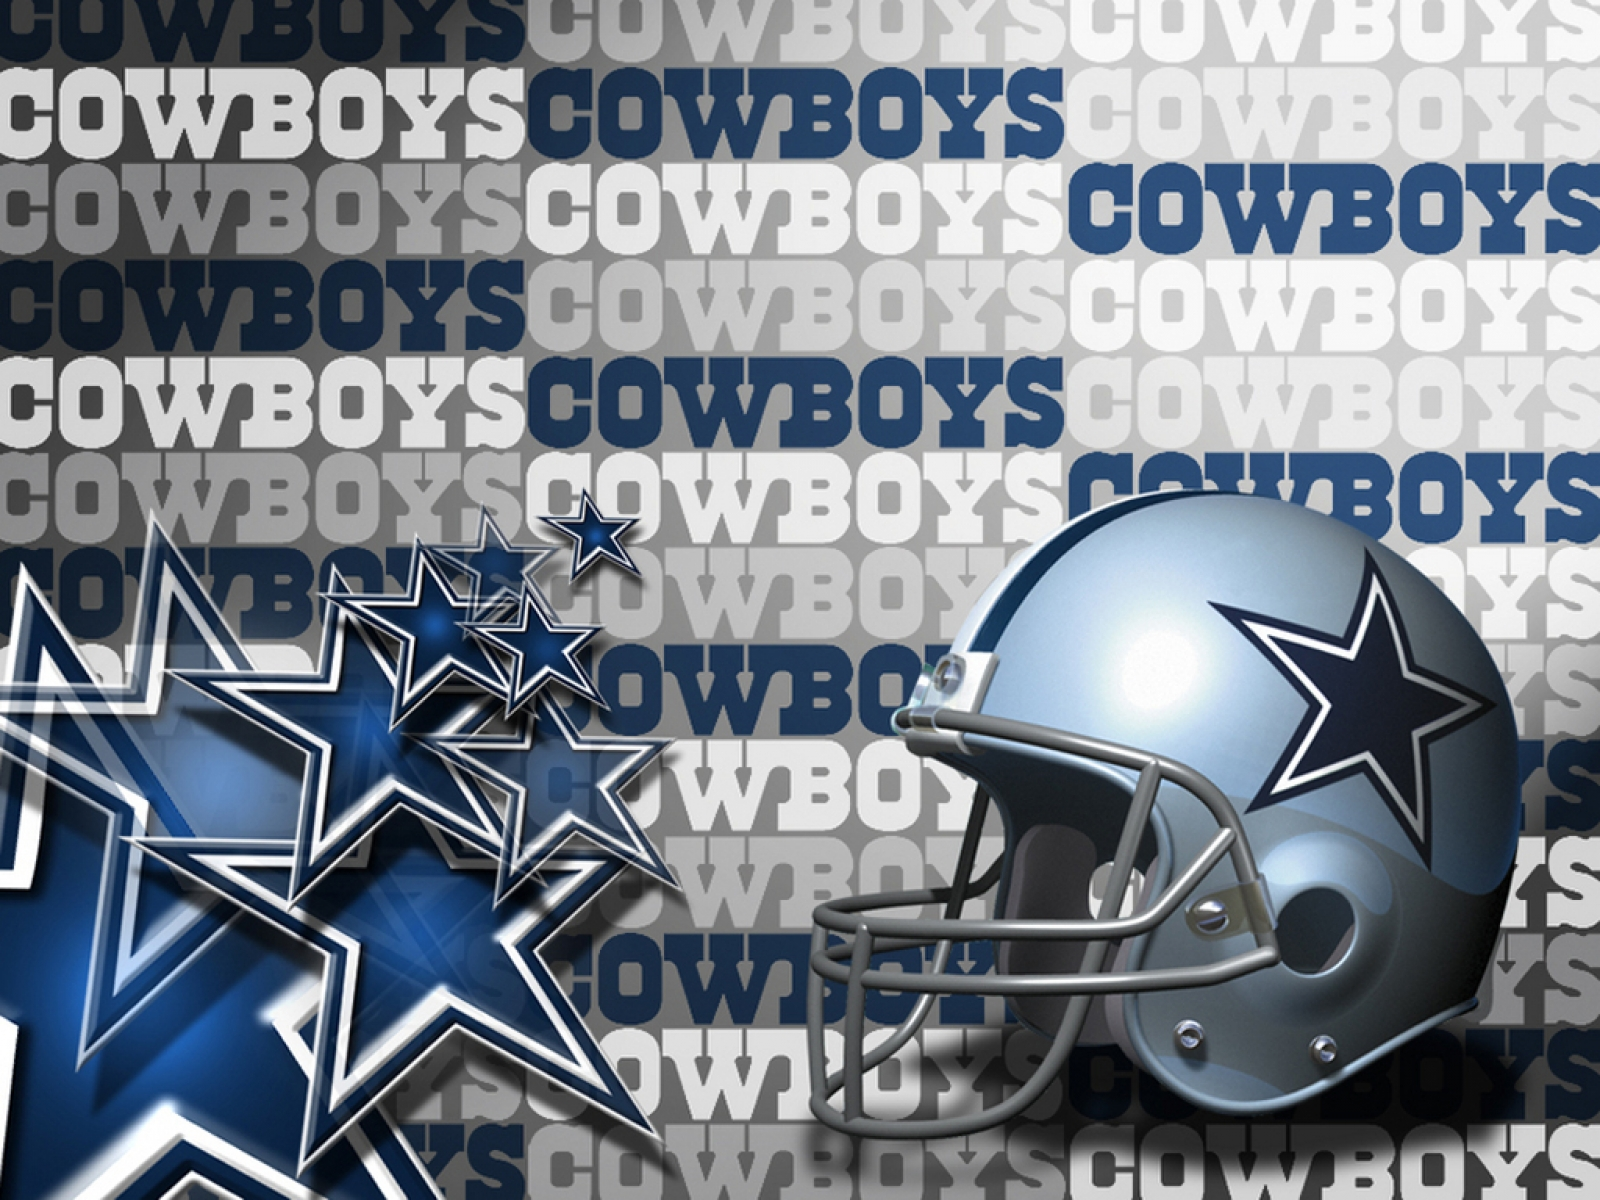 dallas cowboys hd wallpaper dallas cowboys hd wallpaper dallas cowboys 1600x1200